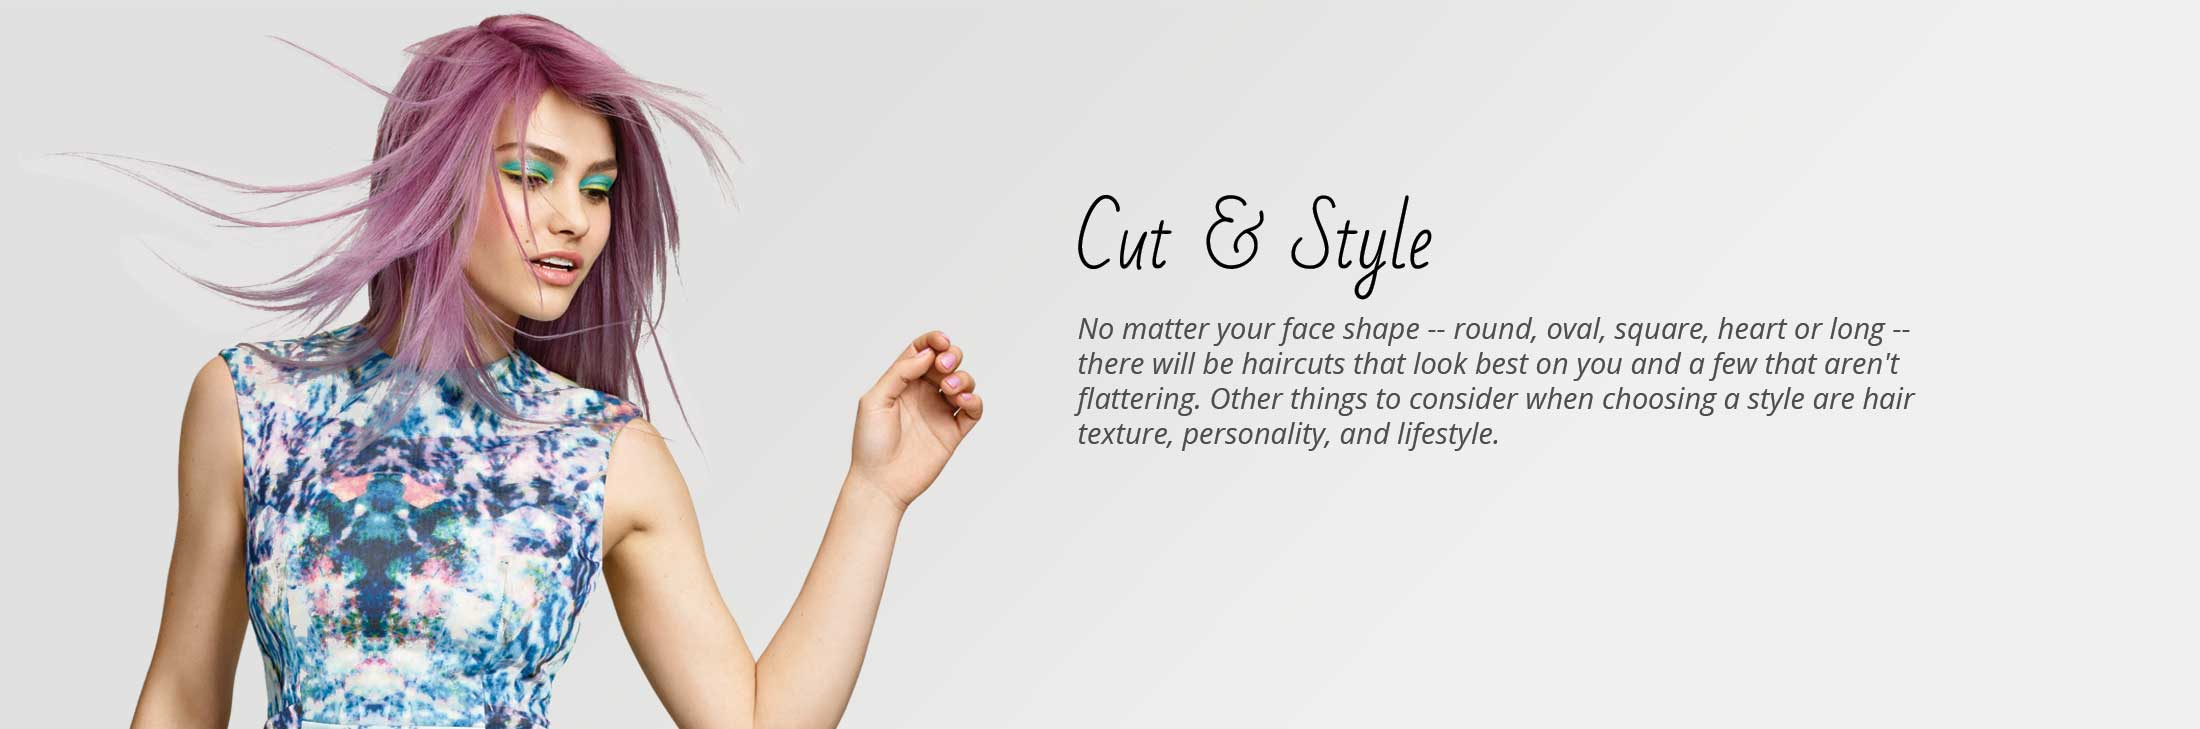 professional cut and style services | Park West Hair Design and Spa